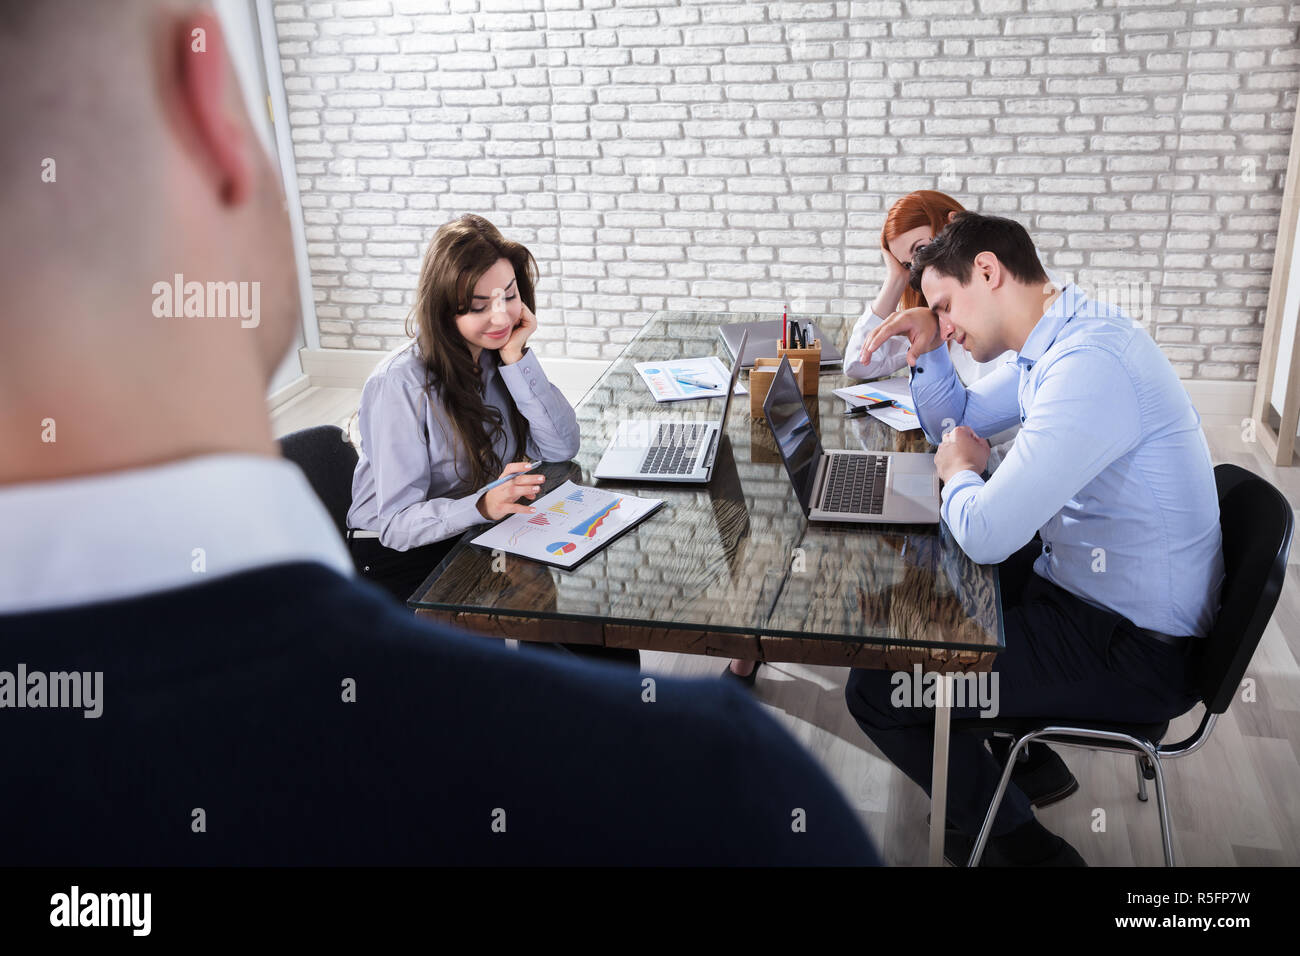 Boredom Coworkers In Office Meeting - Stock Image